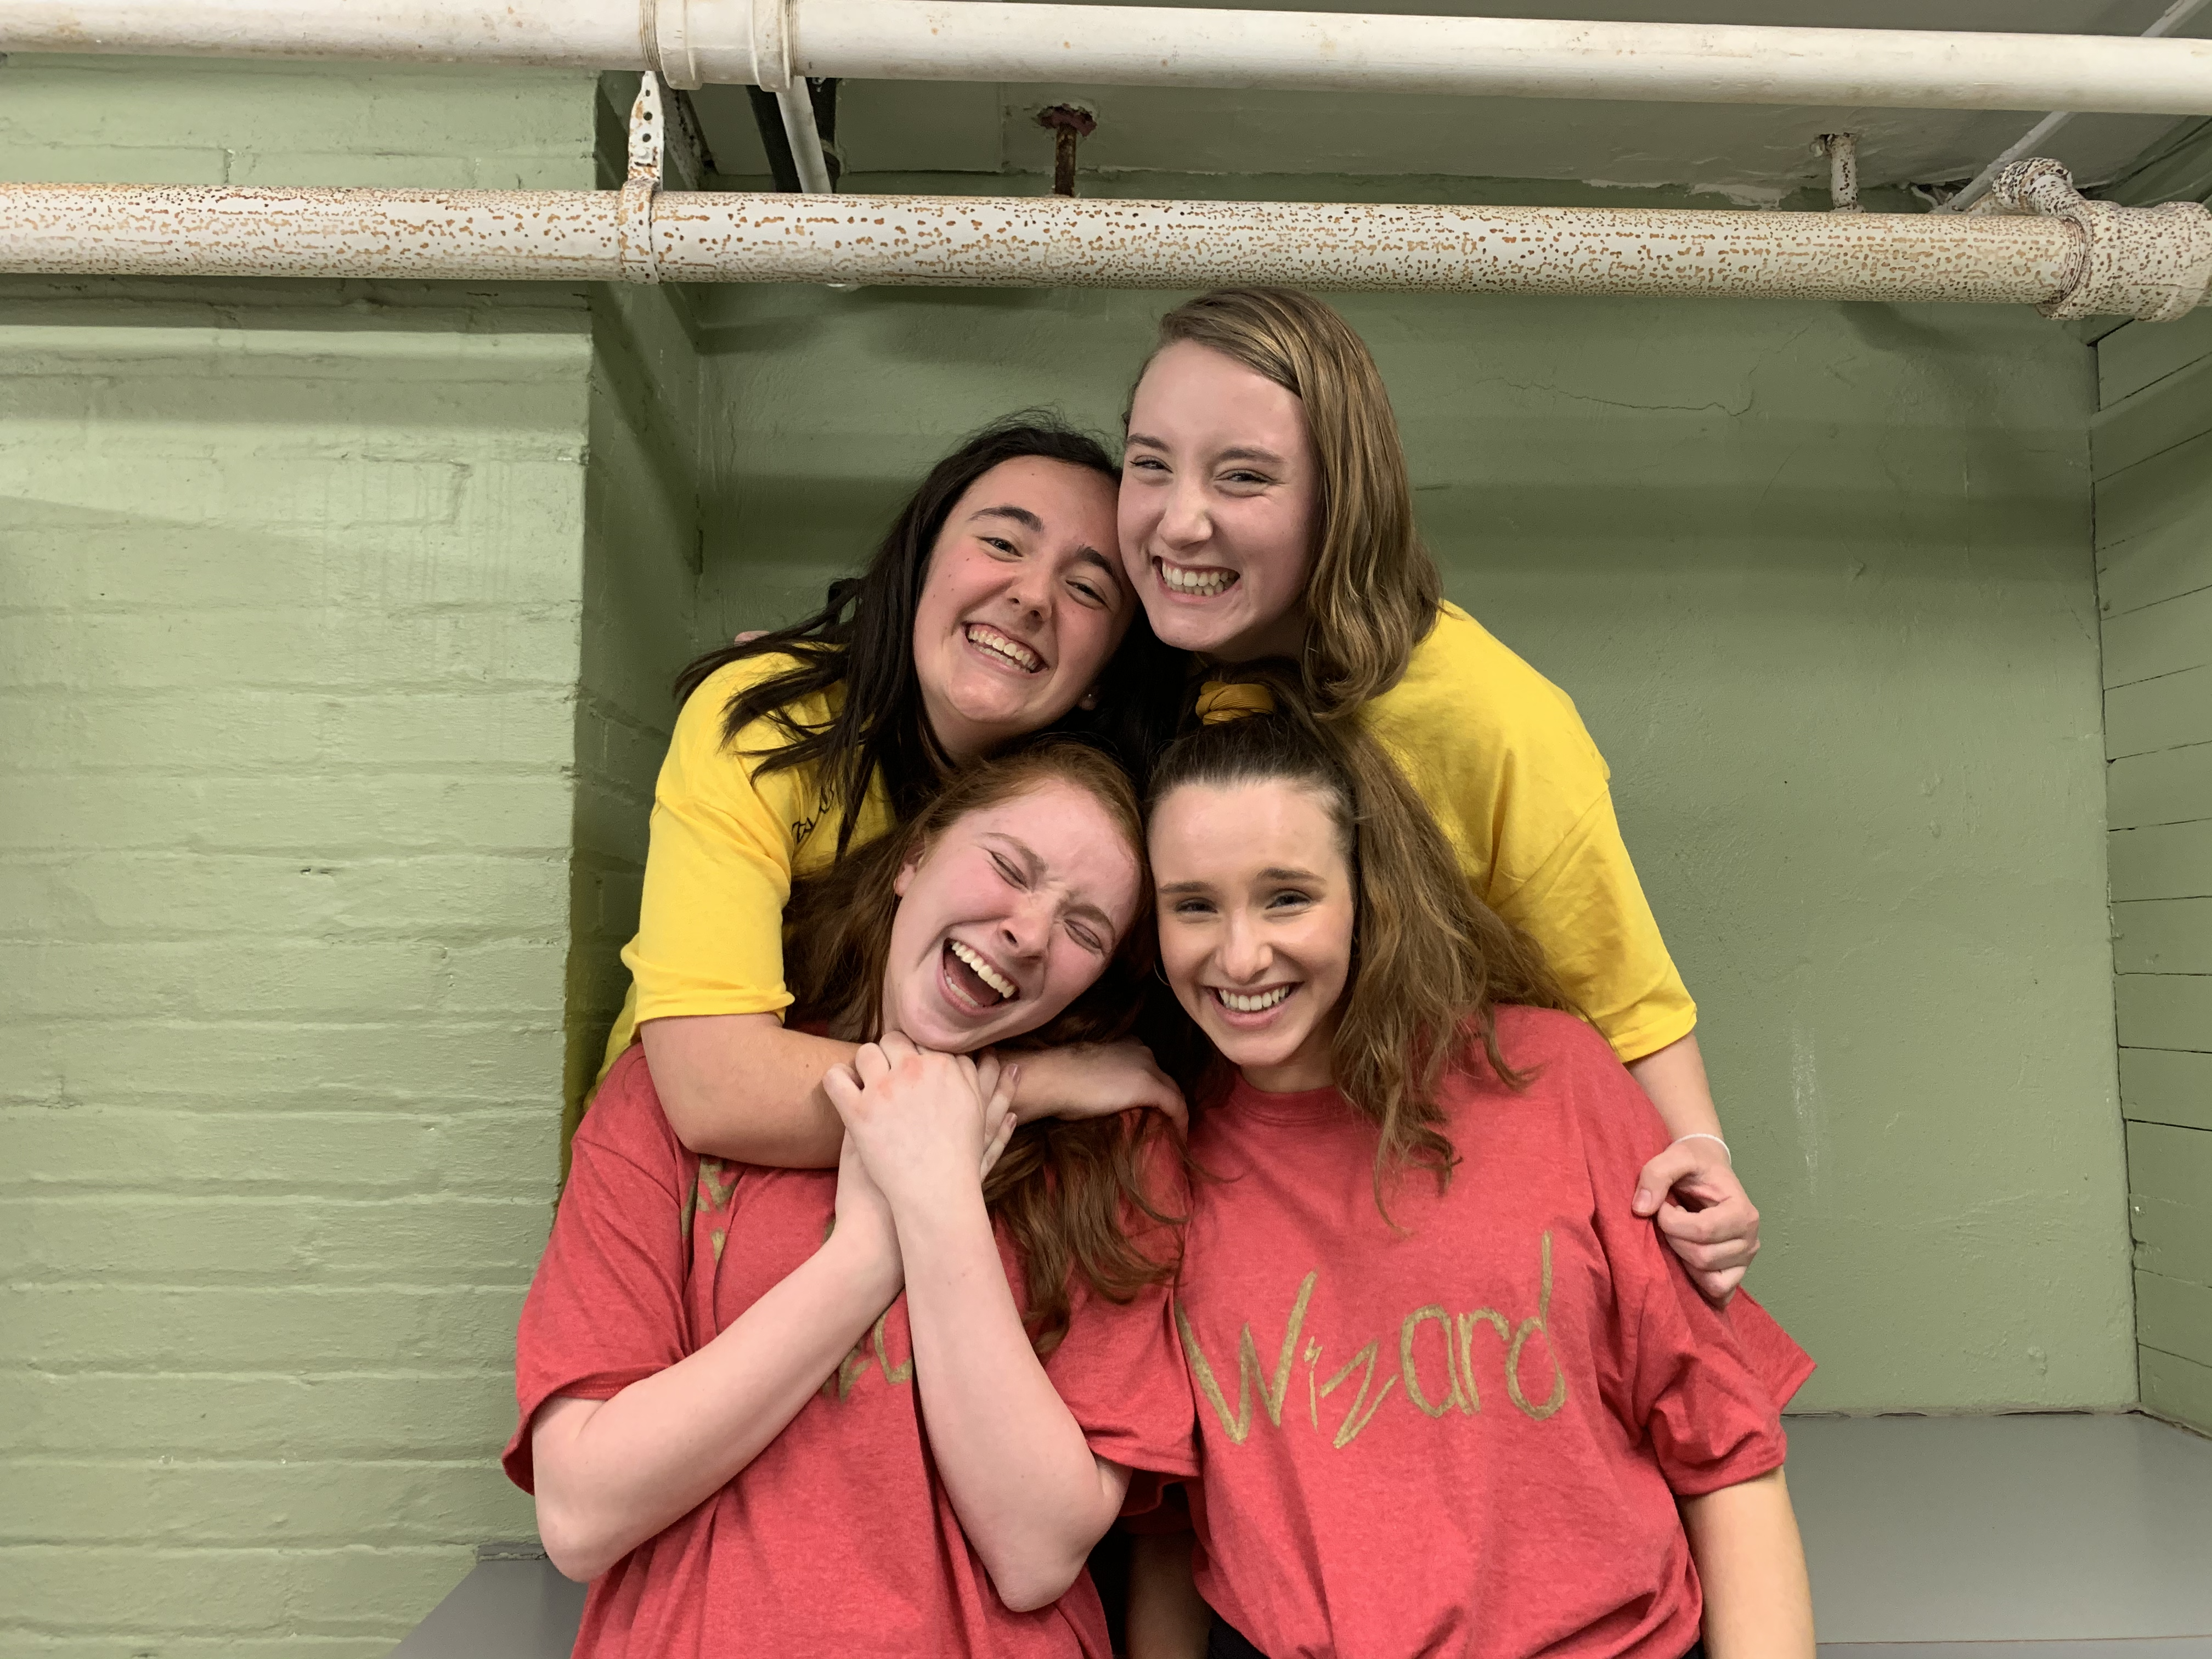 Allison Ingrum poses with her friends the last night before leaving SU campus in March 2020